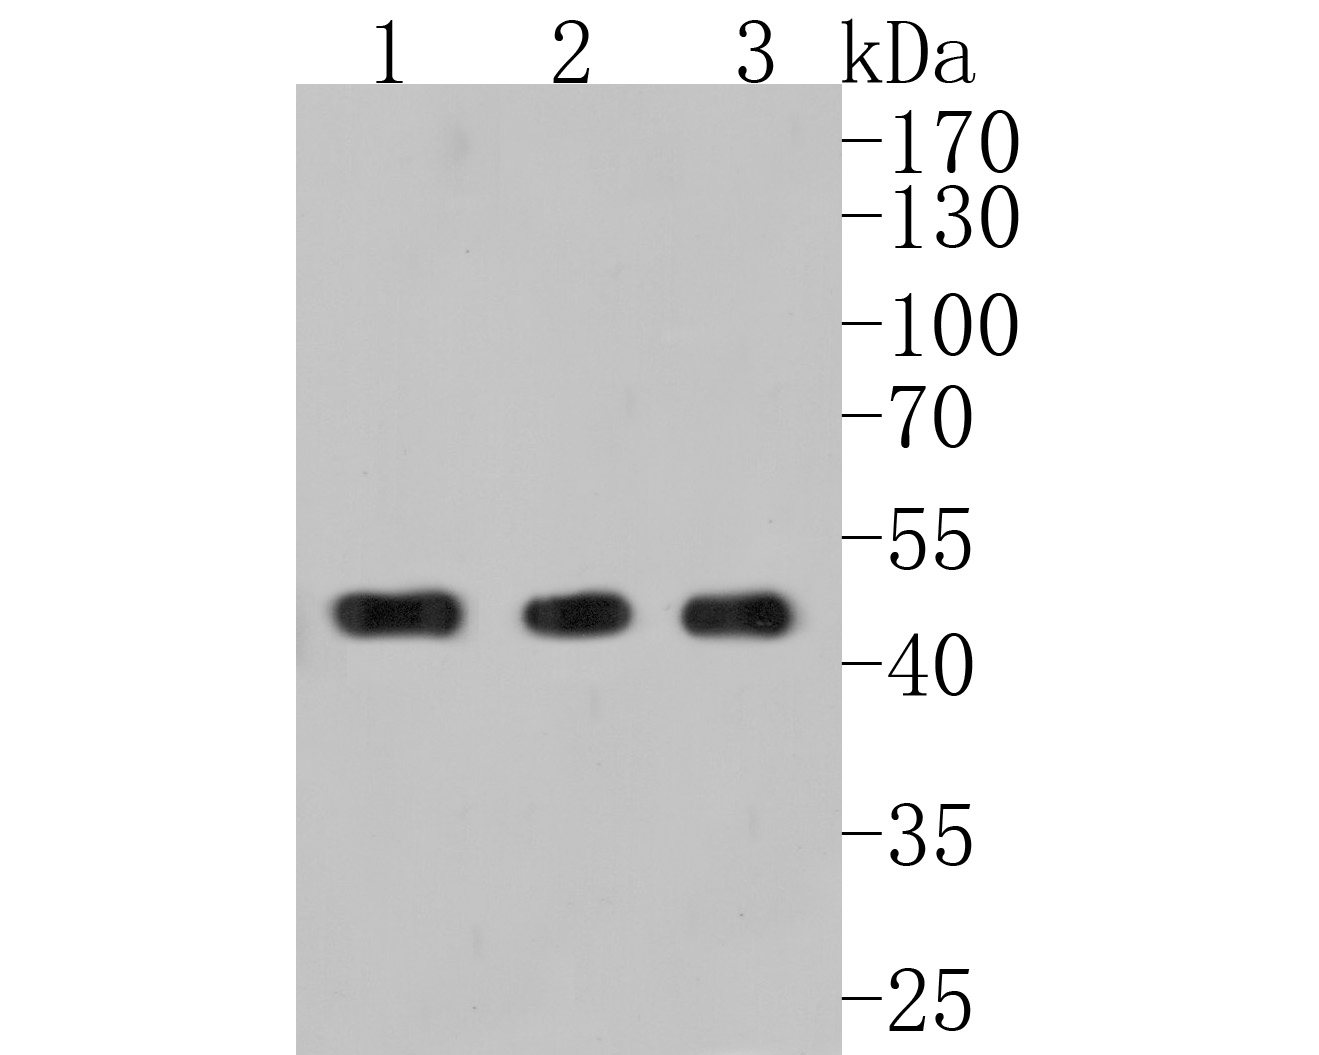 Western blot analysis of PGK1 on different lysates. Proteins were transferred to a PVDF membrane and blocked with 5% BSA in PBS for 1 hour at room temperature. The primary antibody (ET1609-63, 1/500) was used in 5% BSA at room temperature for 2 hours. Goat Anti-Rabbit IgG - HRP Secondary Antibody (HA1001) at 1:5,000 dilution was used for 1 hour at room temperature.<br /> Positive control: <br /> Lane 1: Hela cell lysate<br /> Lane 2: MCF-7 cell lysate<br /> Lane 3: HepG2 cell lysate